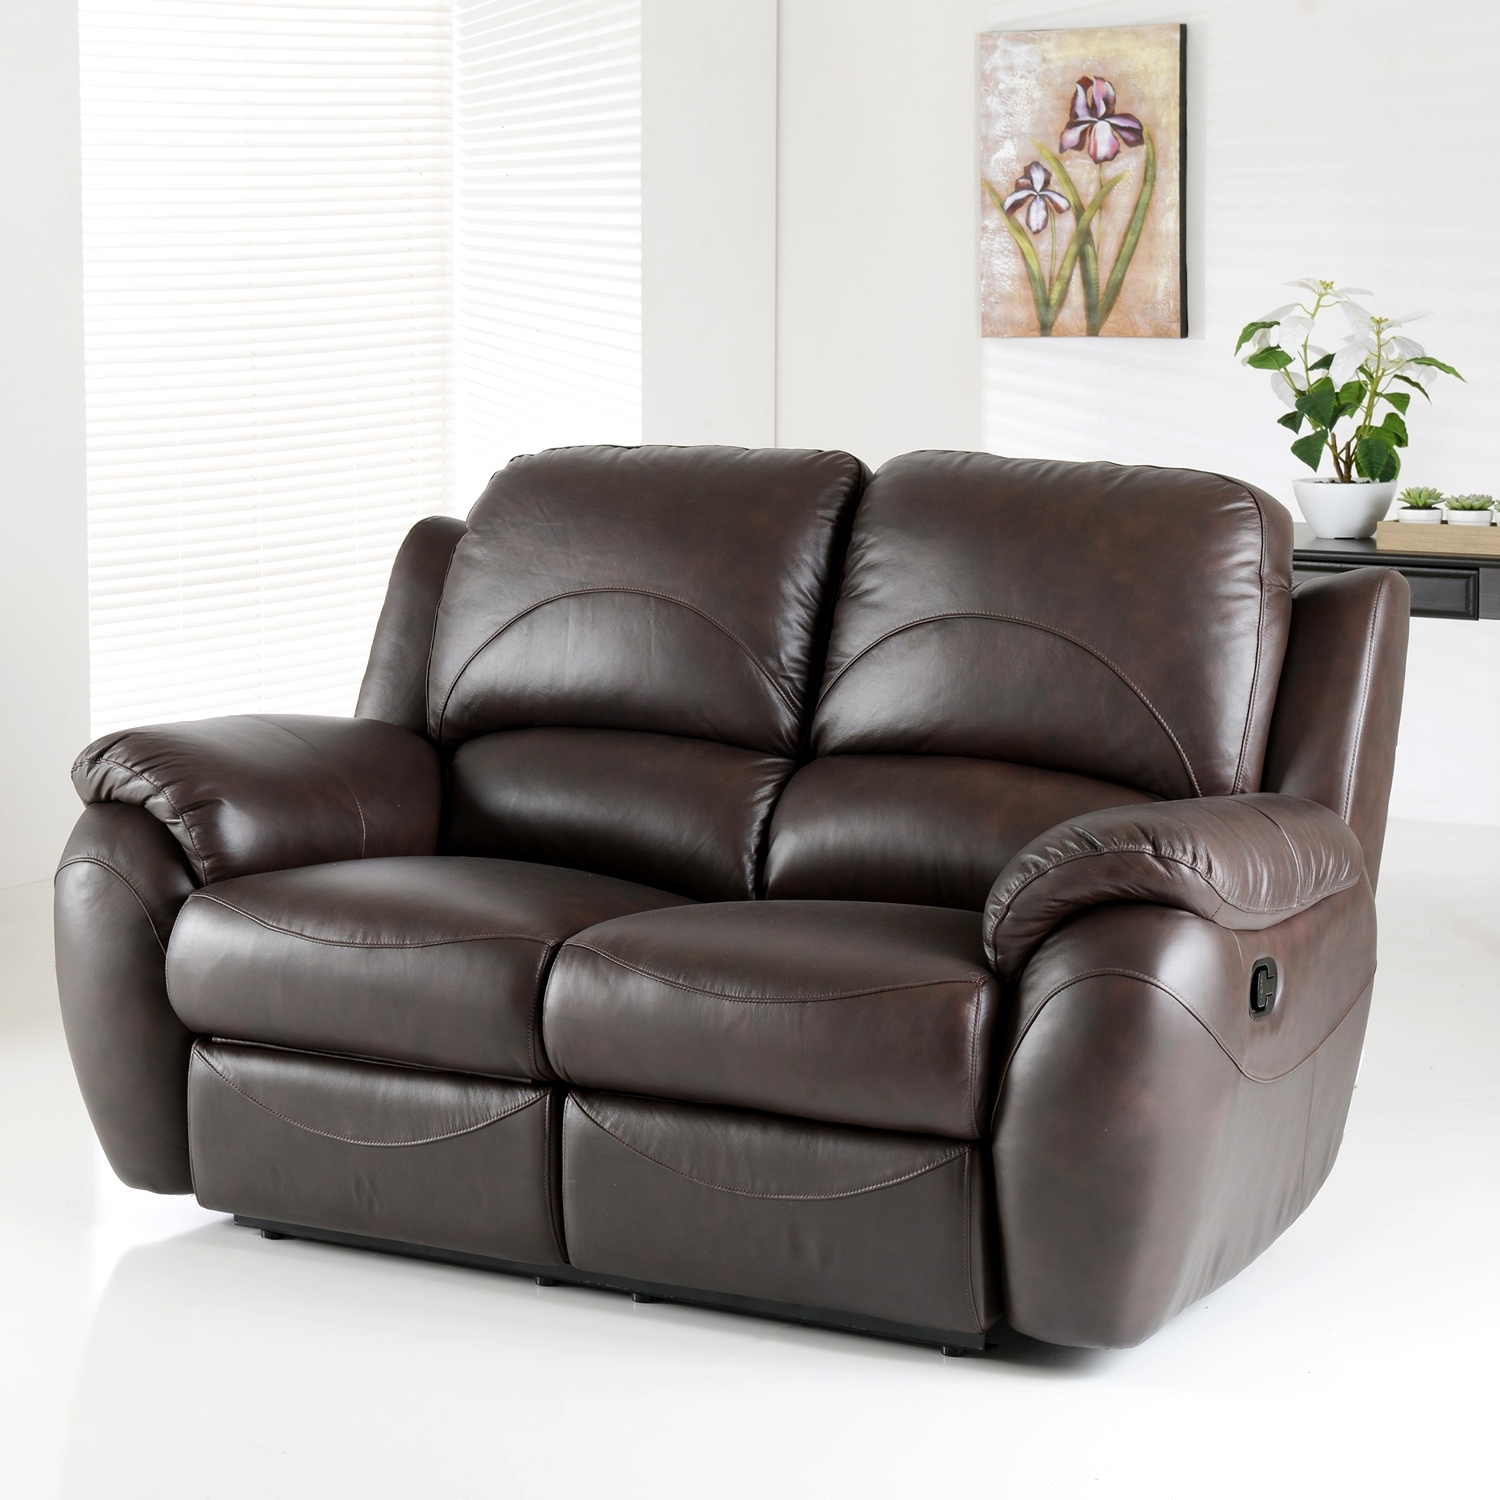 Cheap Reclining Loveseat With Console Used Leather Recliner Chair Throughout Preferred 2 Seat Recliner Sofas (View 13 of 15)